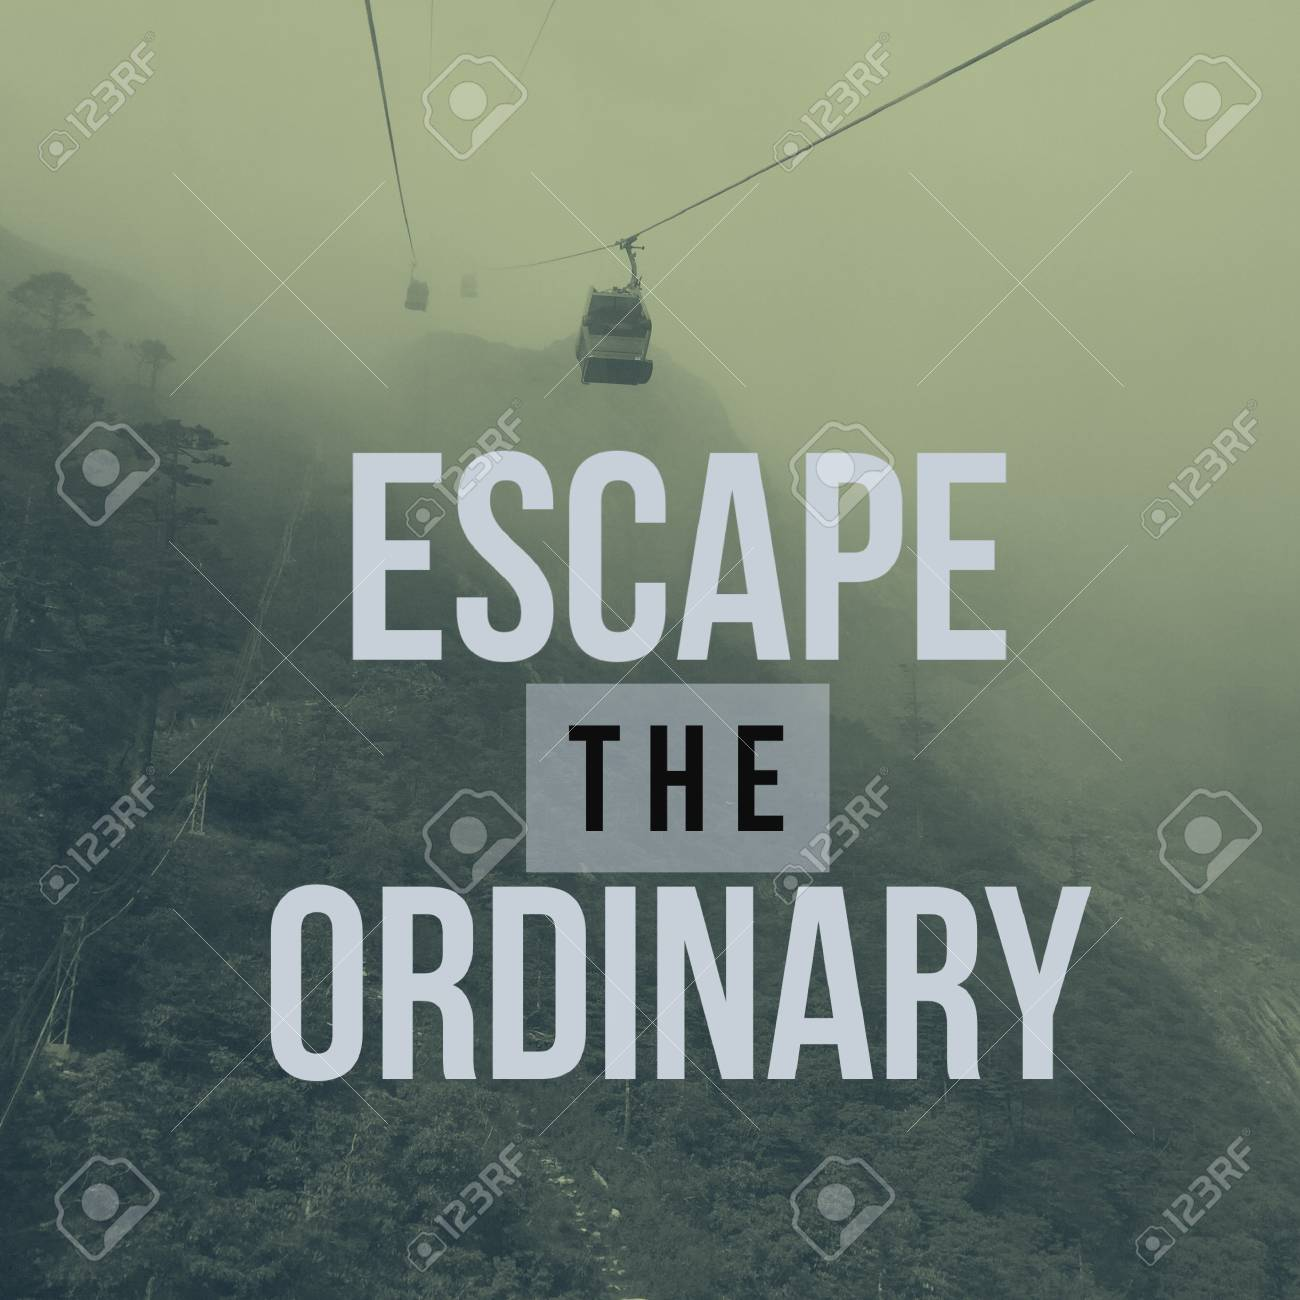 Inspirational Motivational Travel Quote Escape The Ordinary Stock Photo Picture And Royalty Free Image Image 88711825